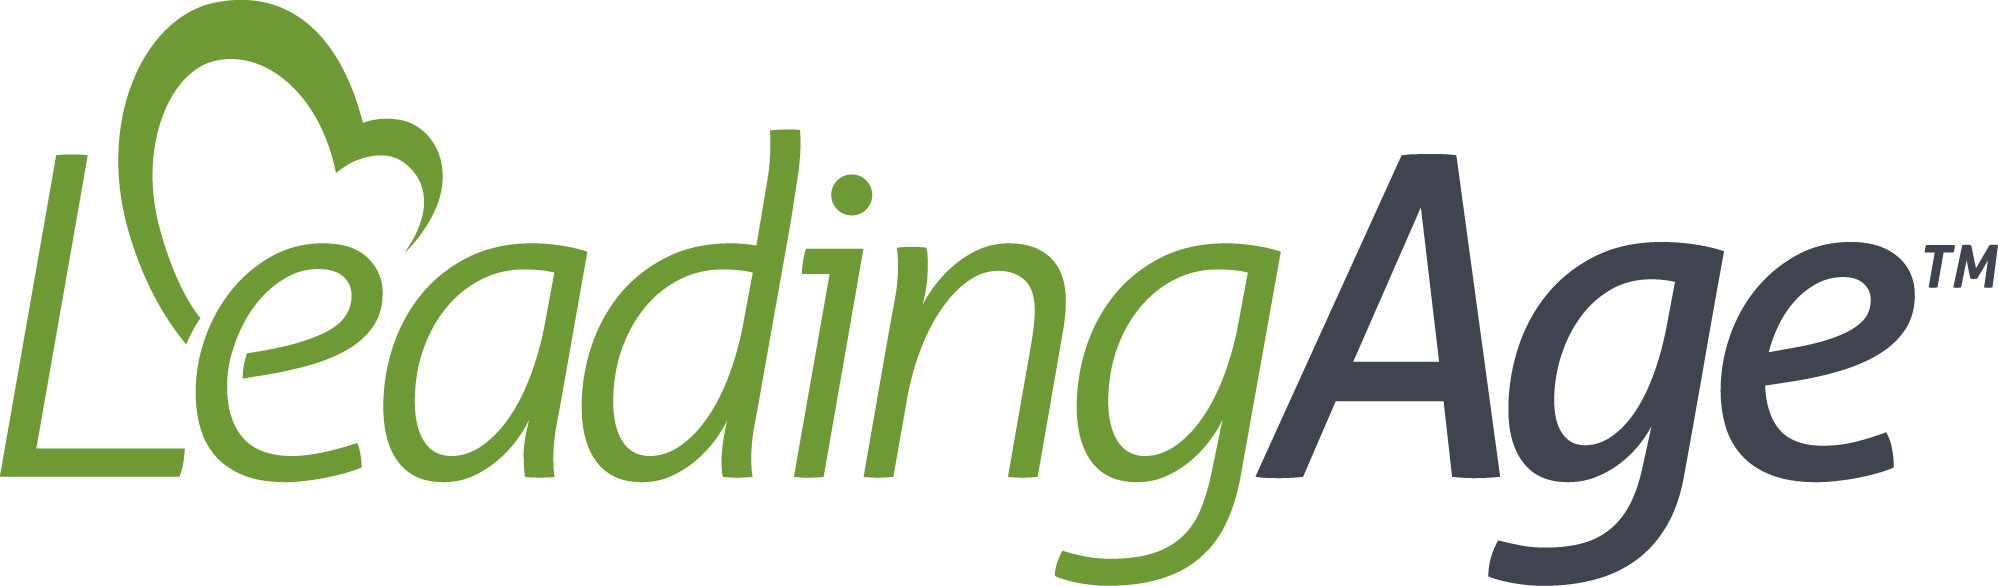 Aric Martin Reappointed LeadingAge Legal Committee